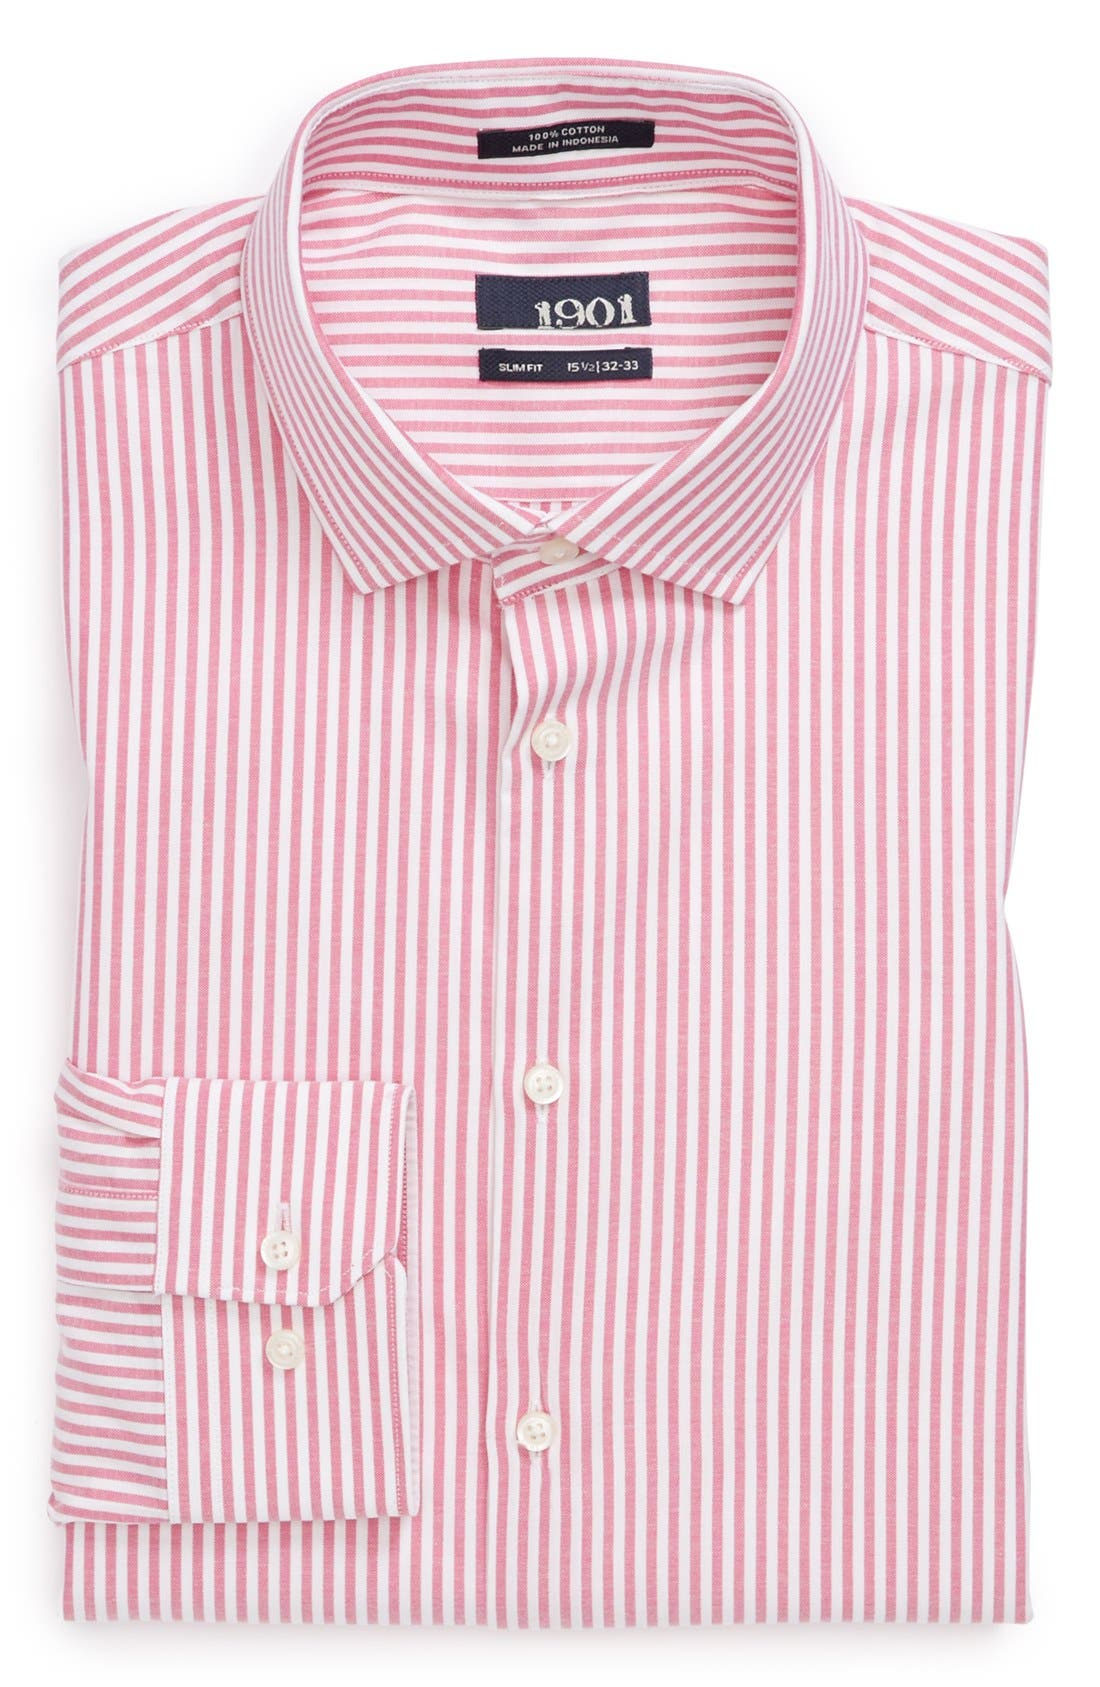 Alternate Image 1 Selected - 1901 Slim Fit Stripe Oxford Dress Shirt